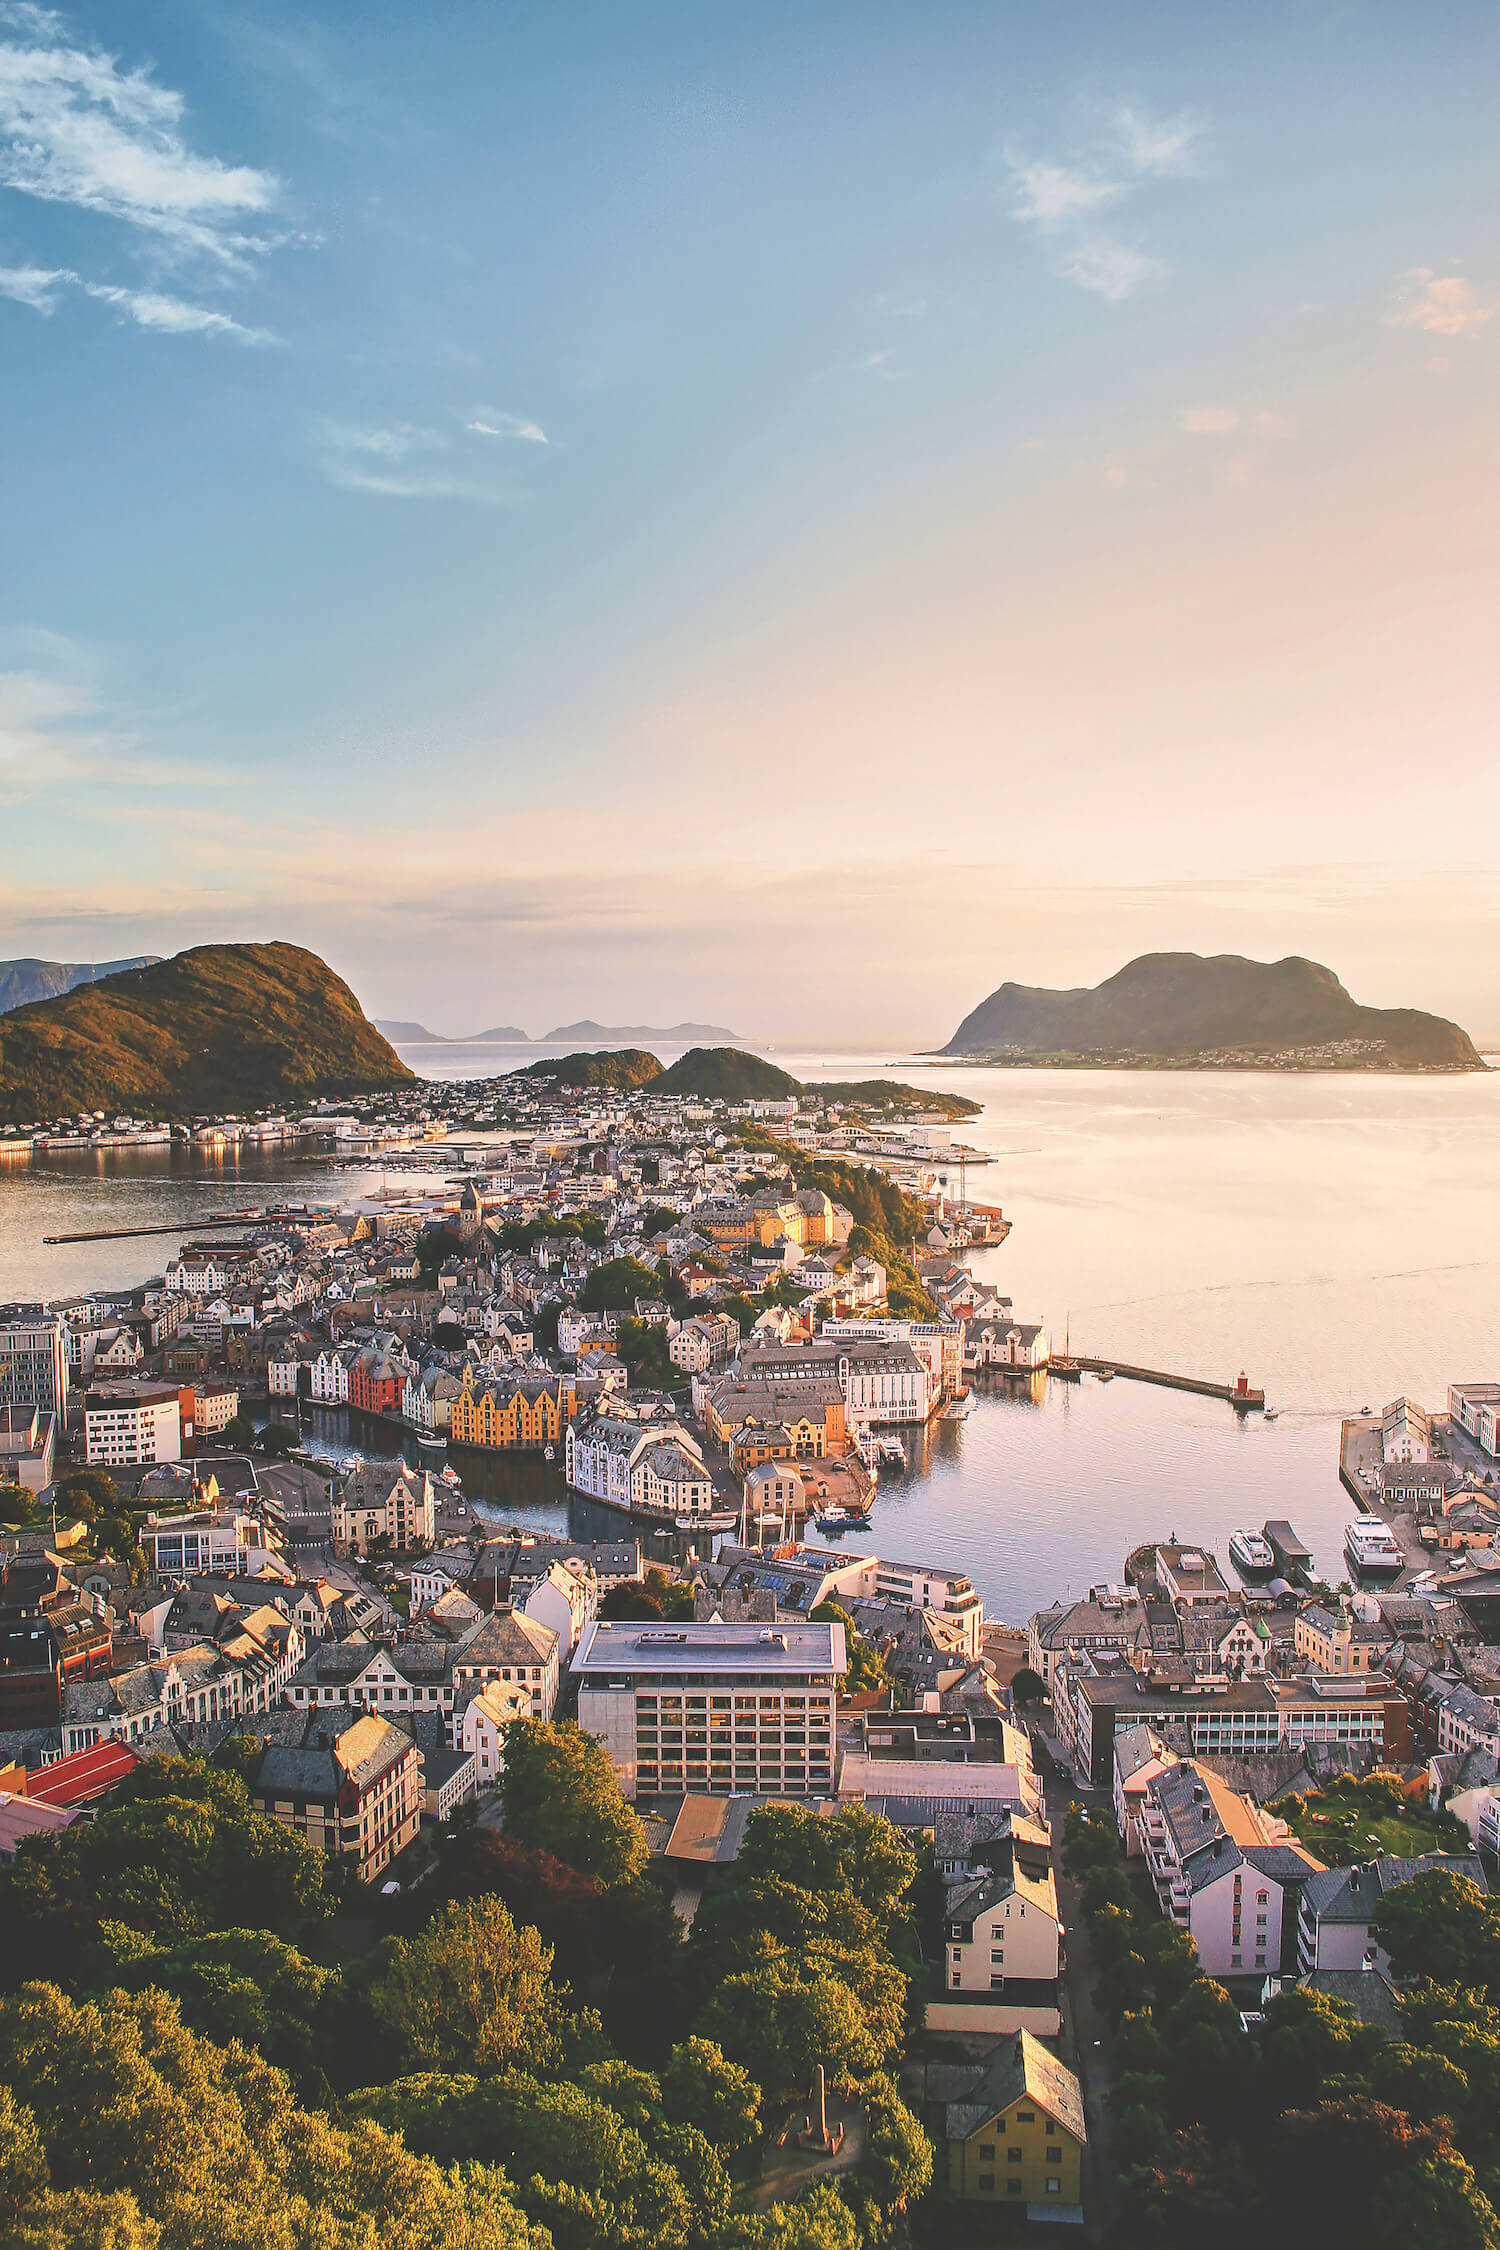 Scandinavia, or more widely the Nordic, is a region in the far north of Europe